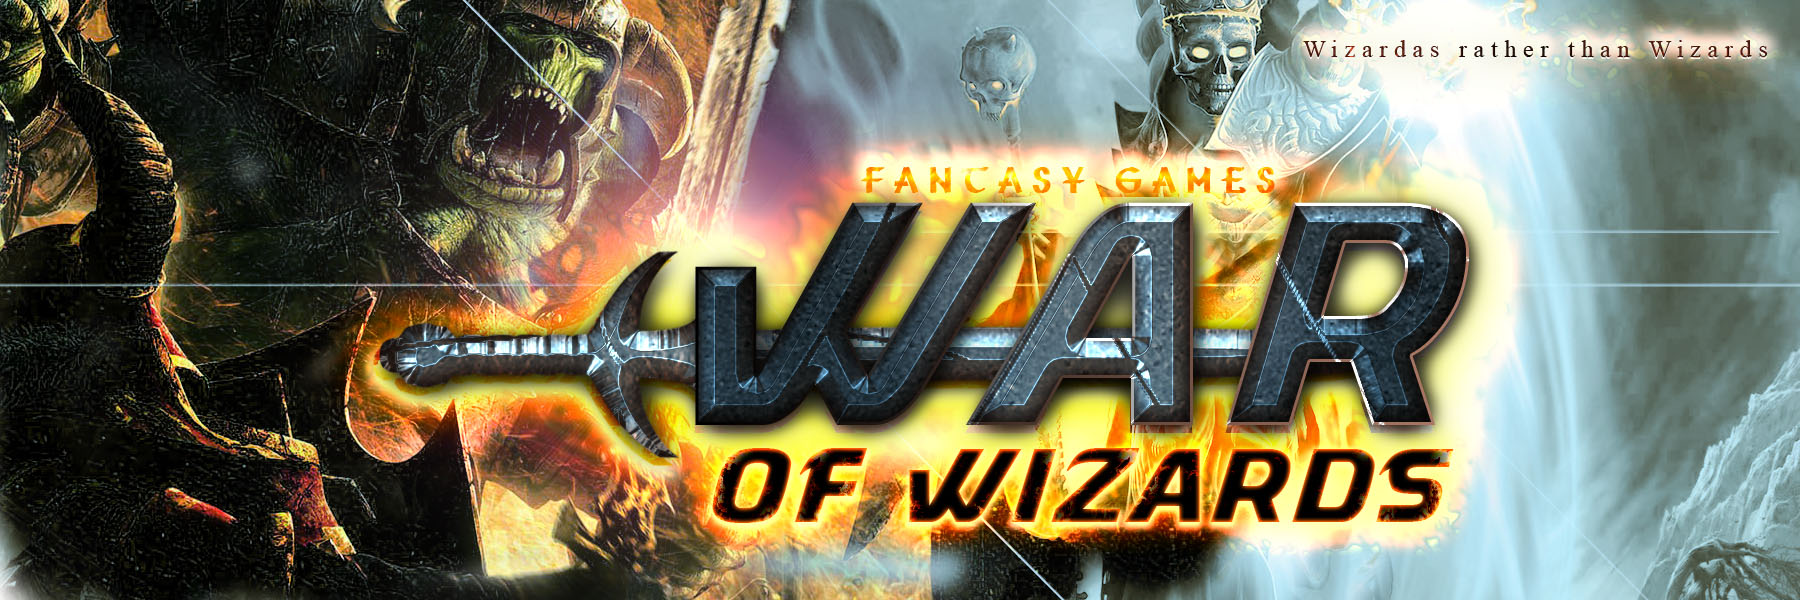 Banner Ad Design by Private User - Entry No. 16 in the Banner Ad Design Contest Banner Ad Design - War of Wizards (fantasy game).